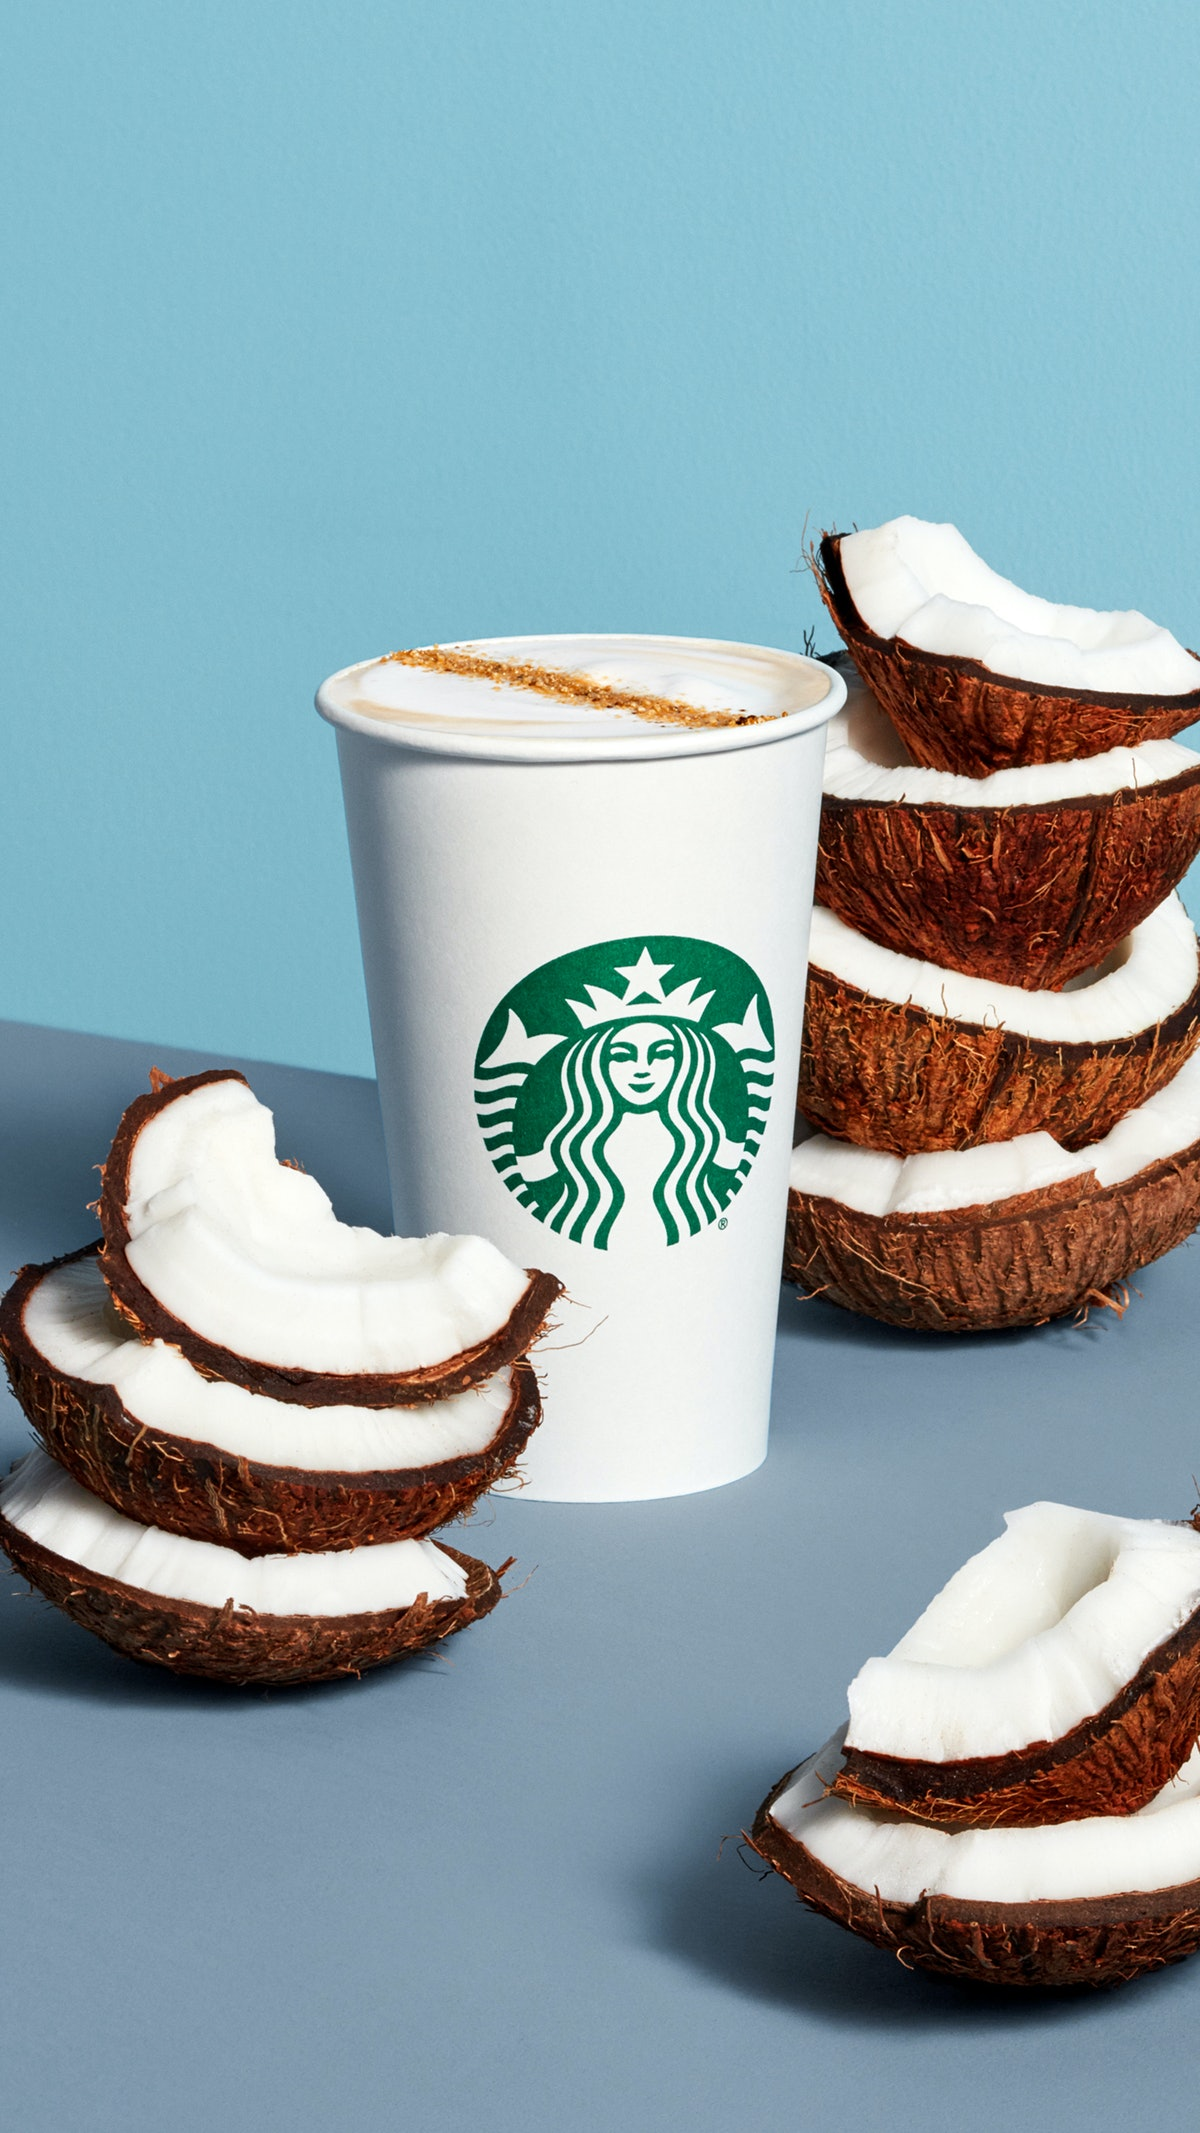 Starbucks' Coconutmilk Latte is a new dairy-free option.